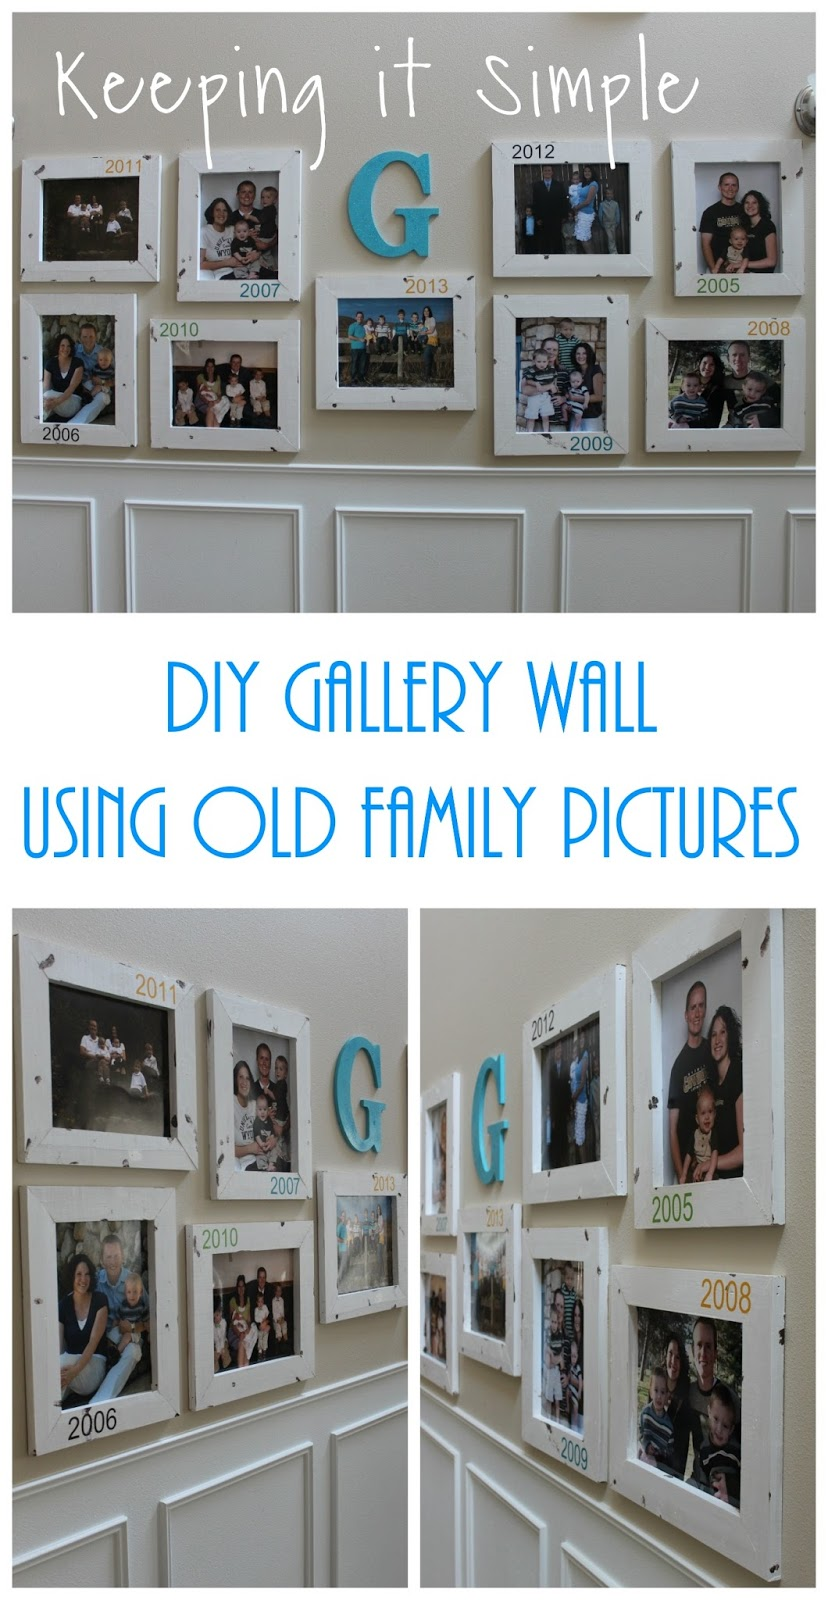 Diy Gallery Wall With Old Family Pictures Keeping It Simple